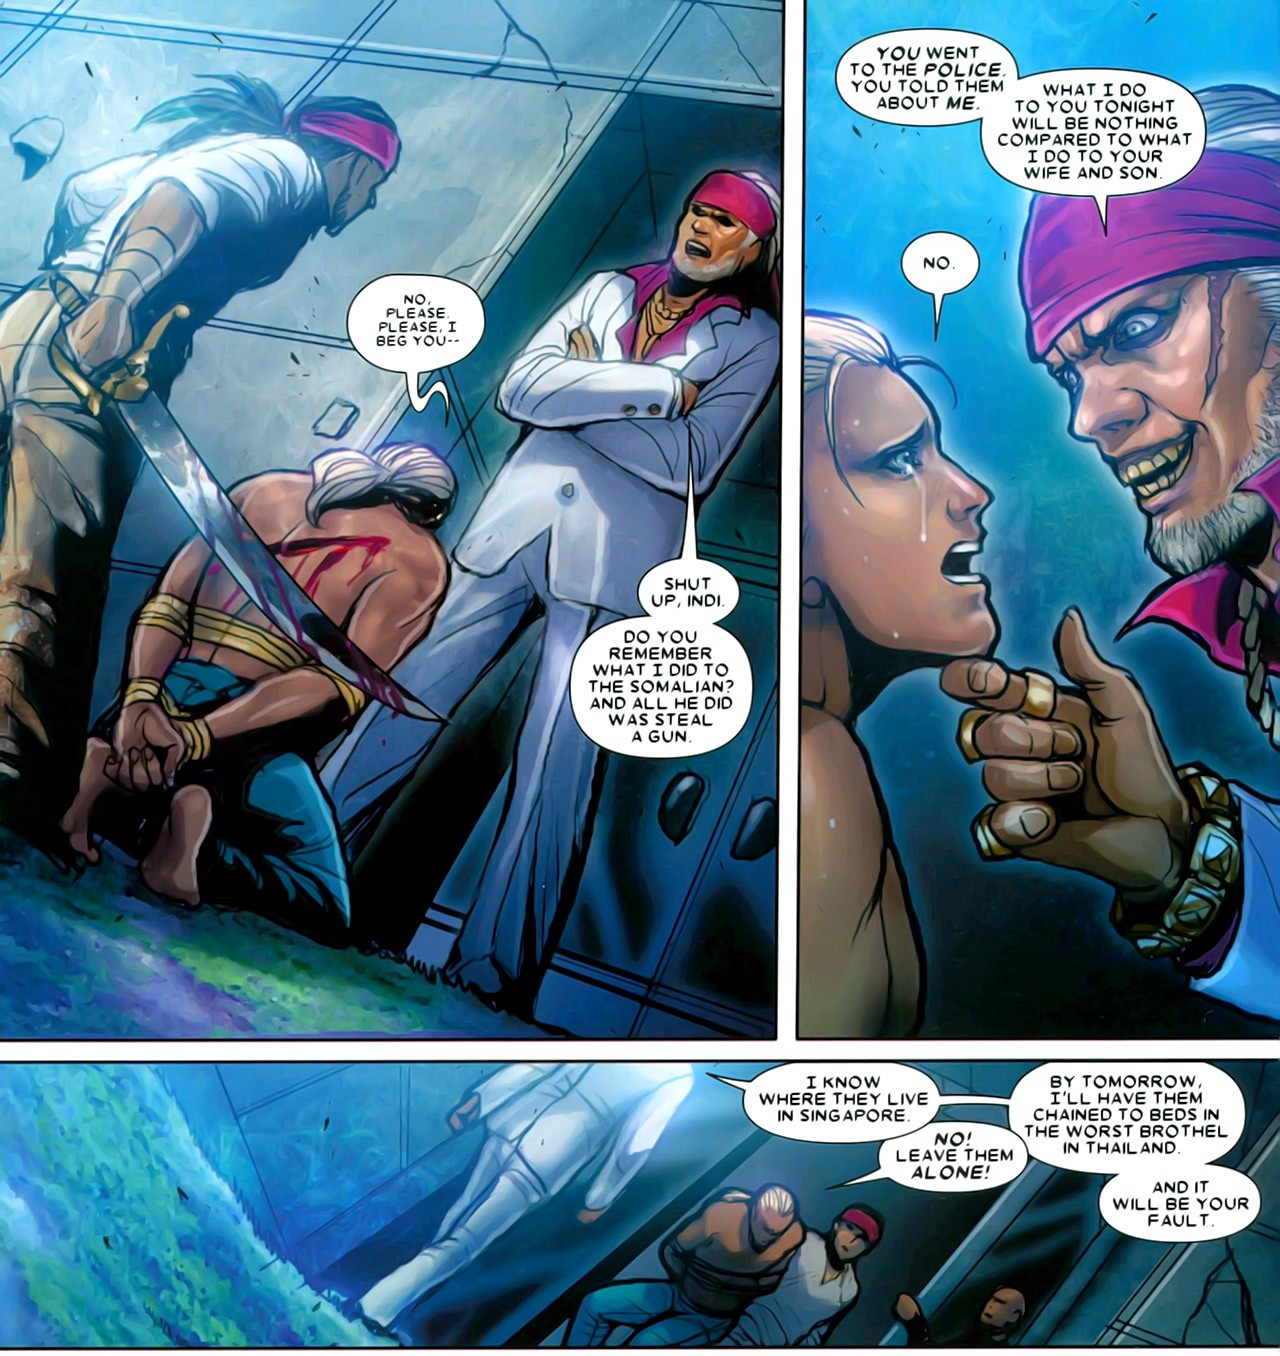 X-men Supreme: X-23 #7 - Consoling Awesome X 23 Gambit